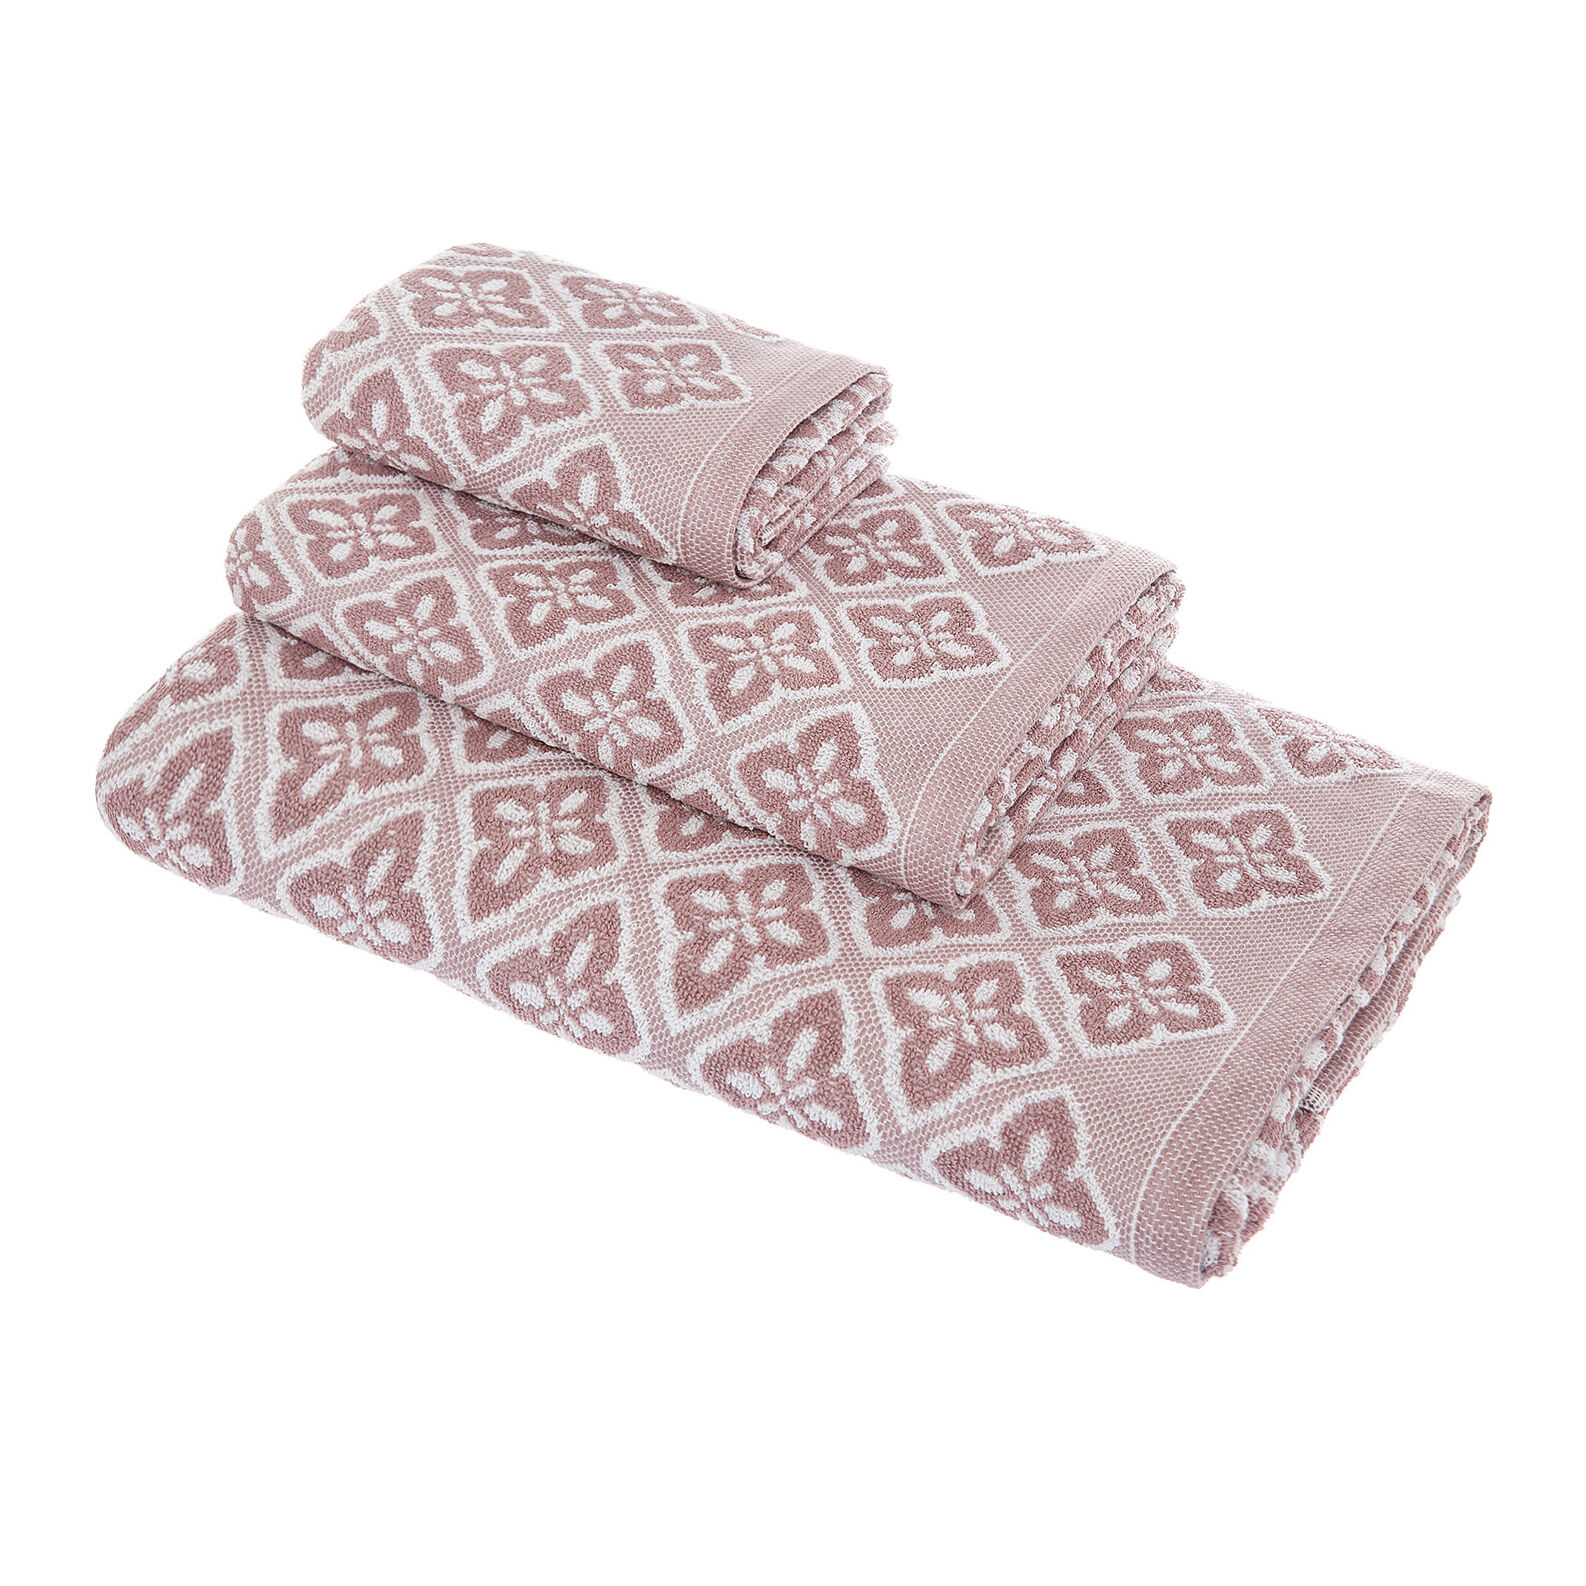 100% cotton decorated towel